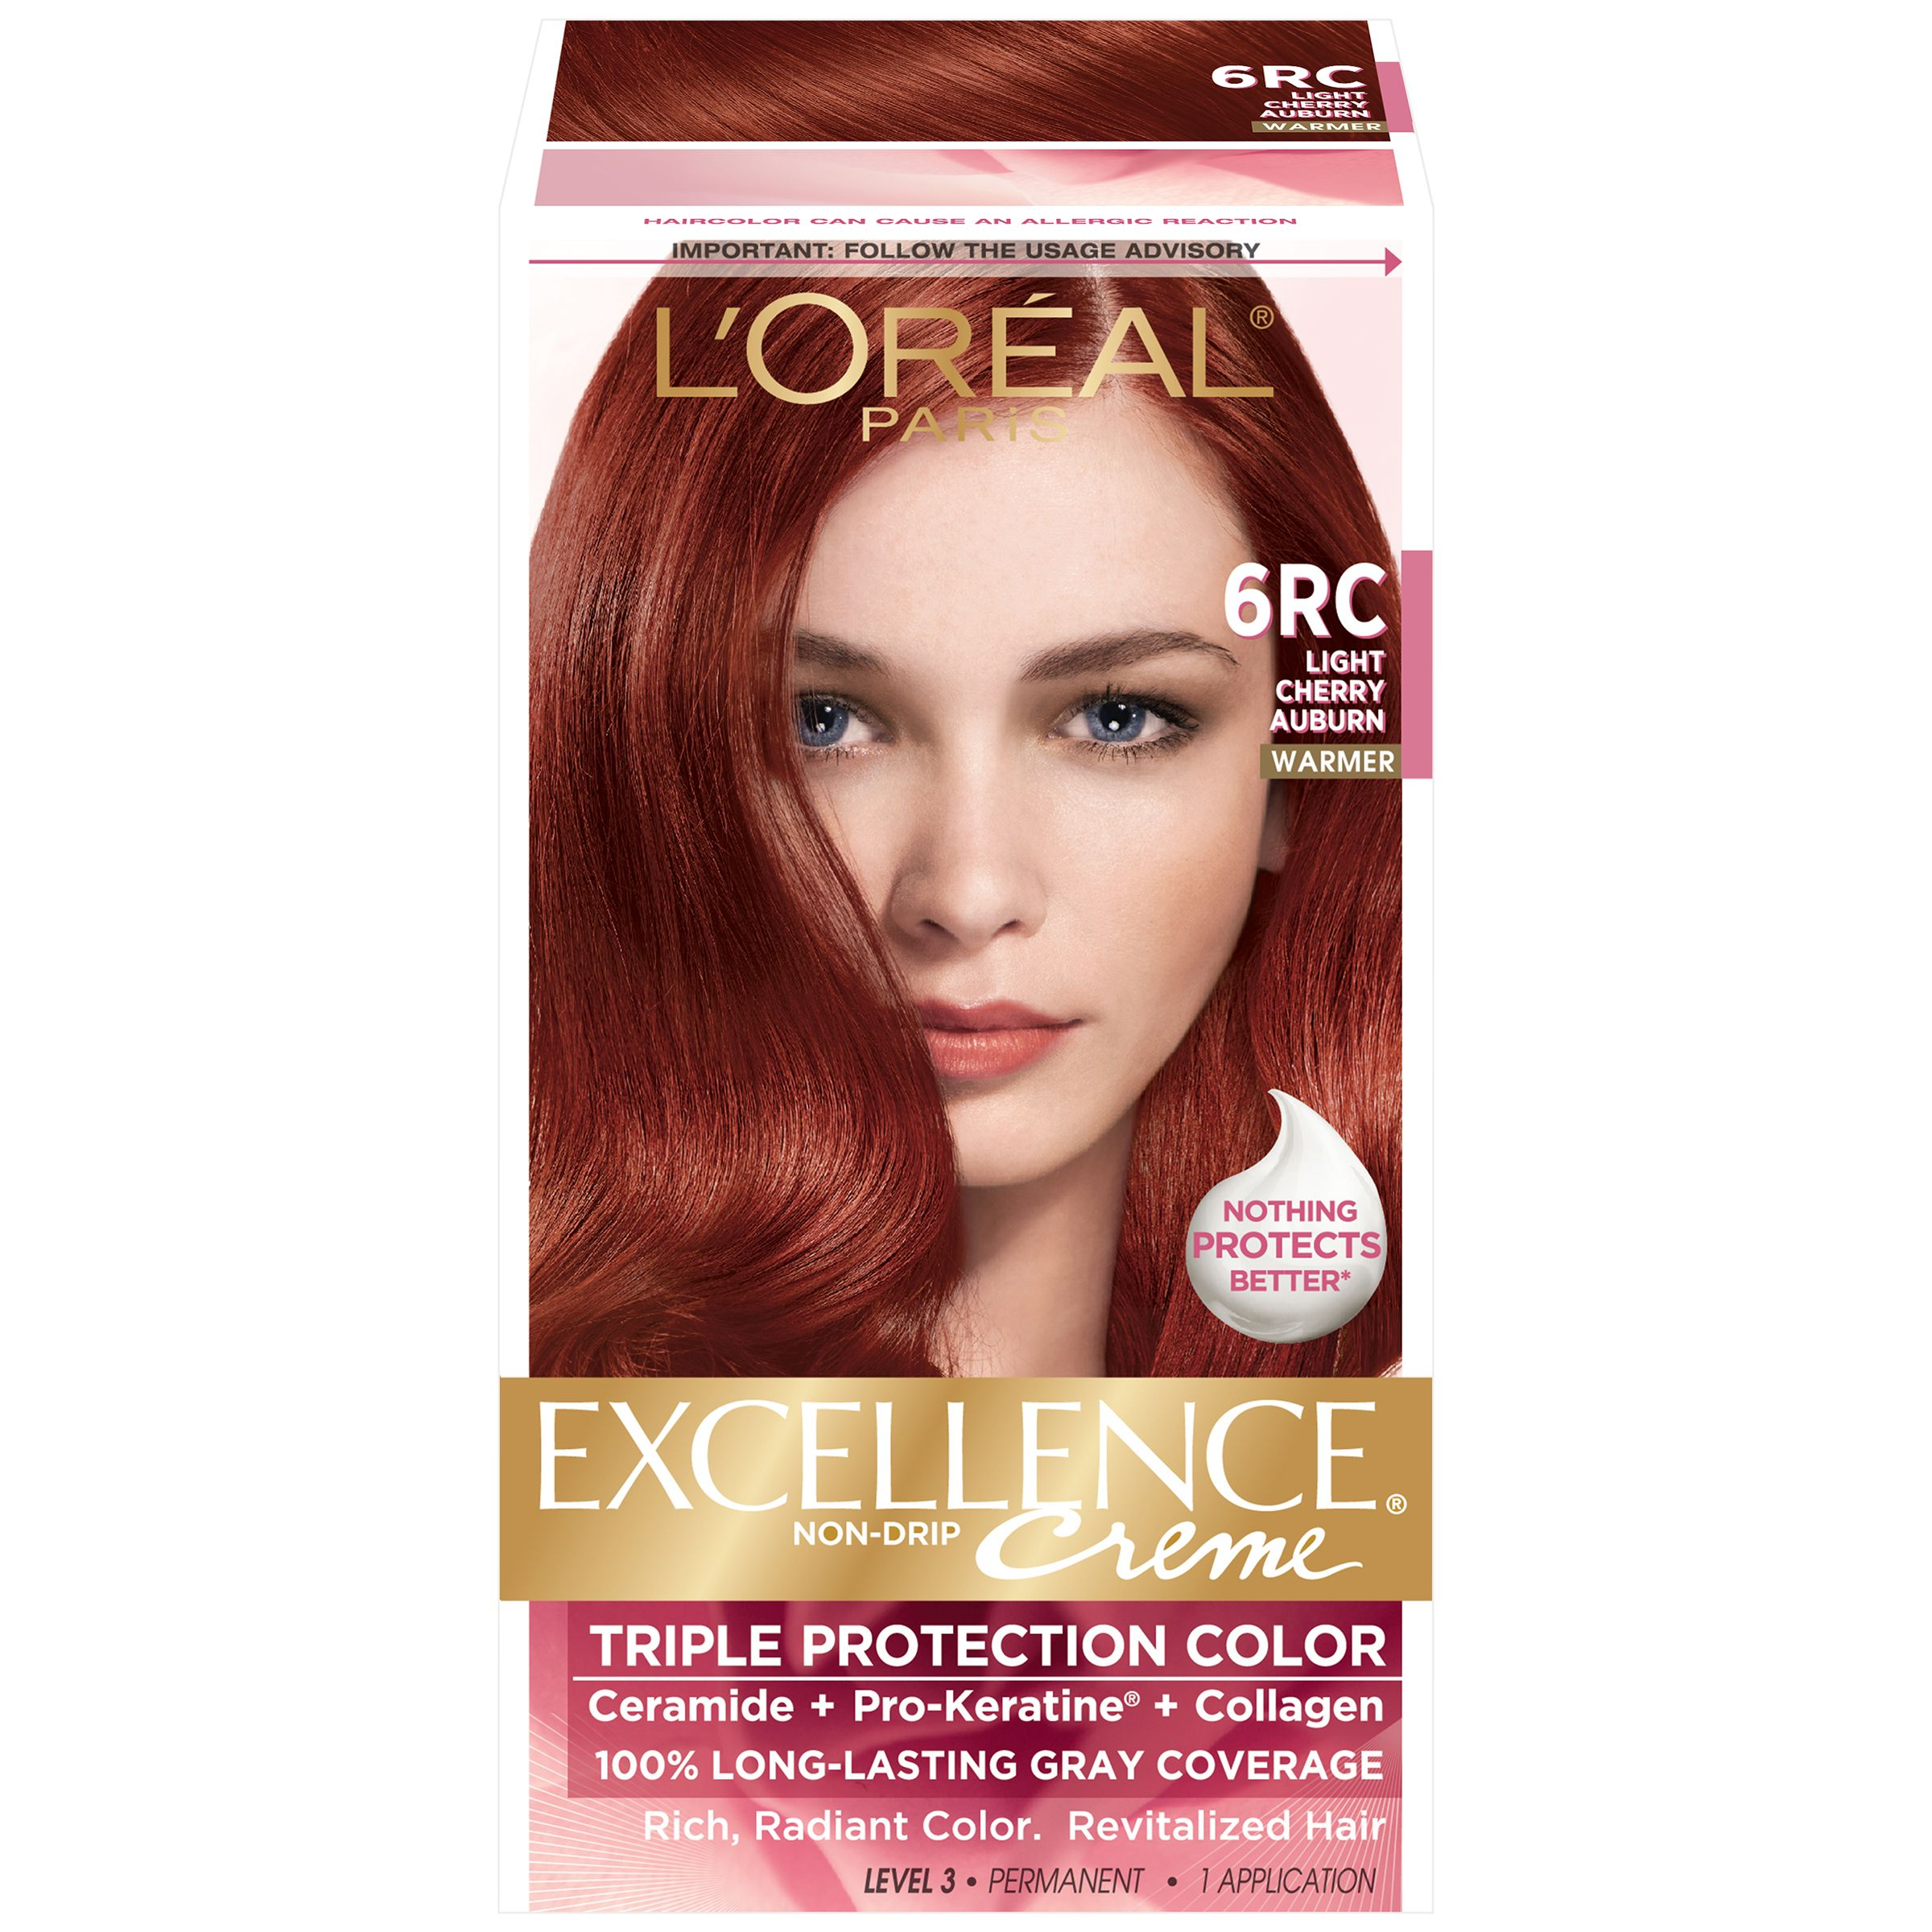 L Oreal 6rc Warmer Light Cherry Auburn Hair Color 1 Kt Box